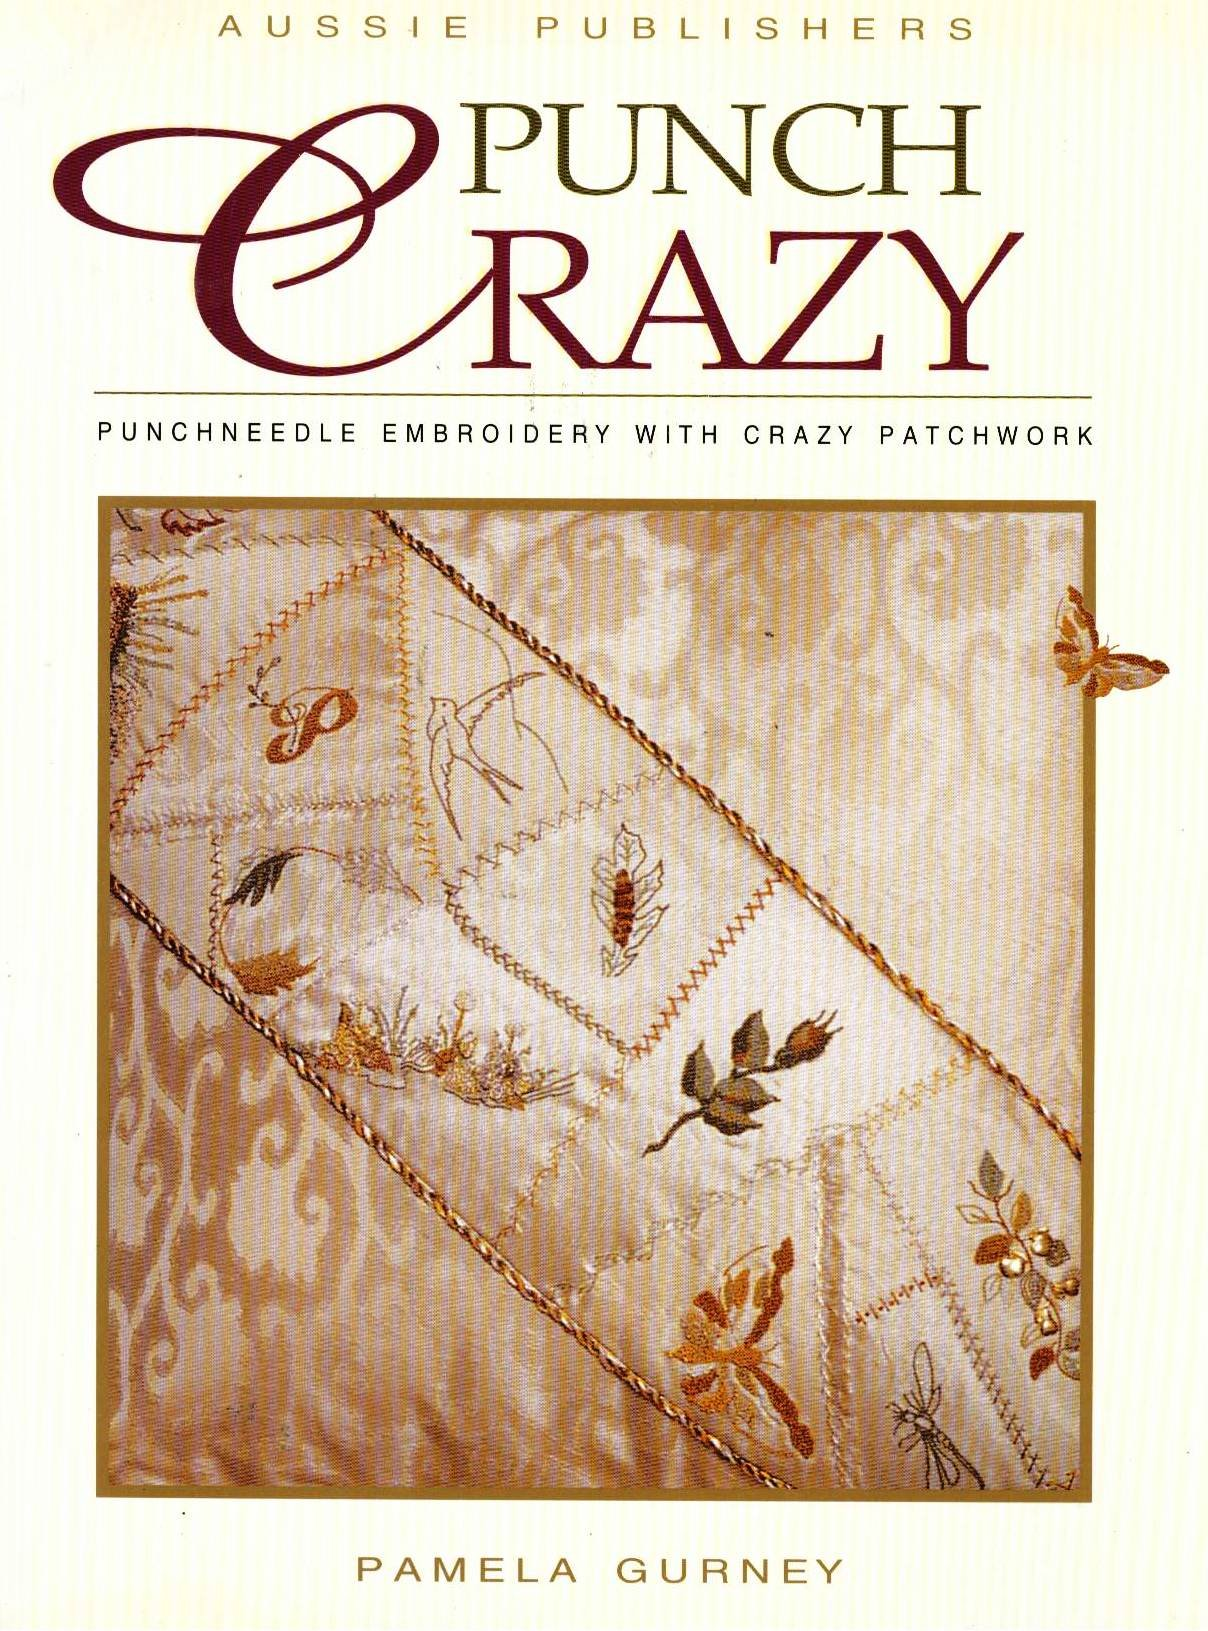 Punch Crazy: Punchneedle Embroidery with Crazy Patchwork